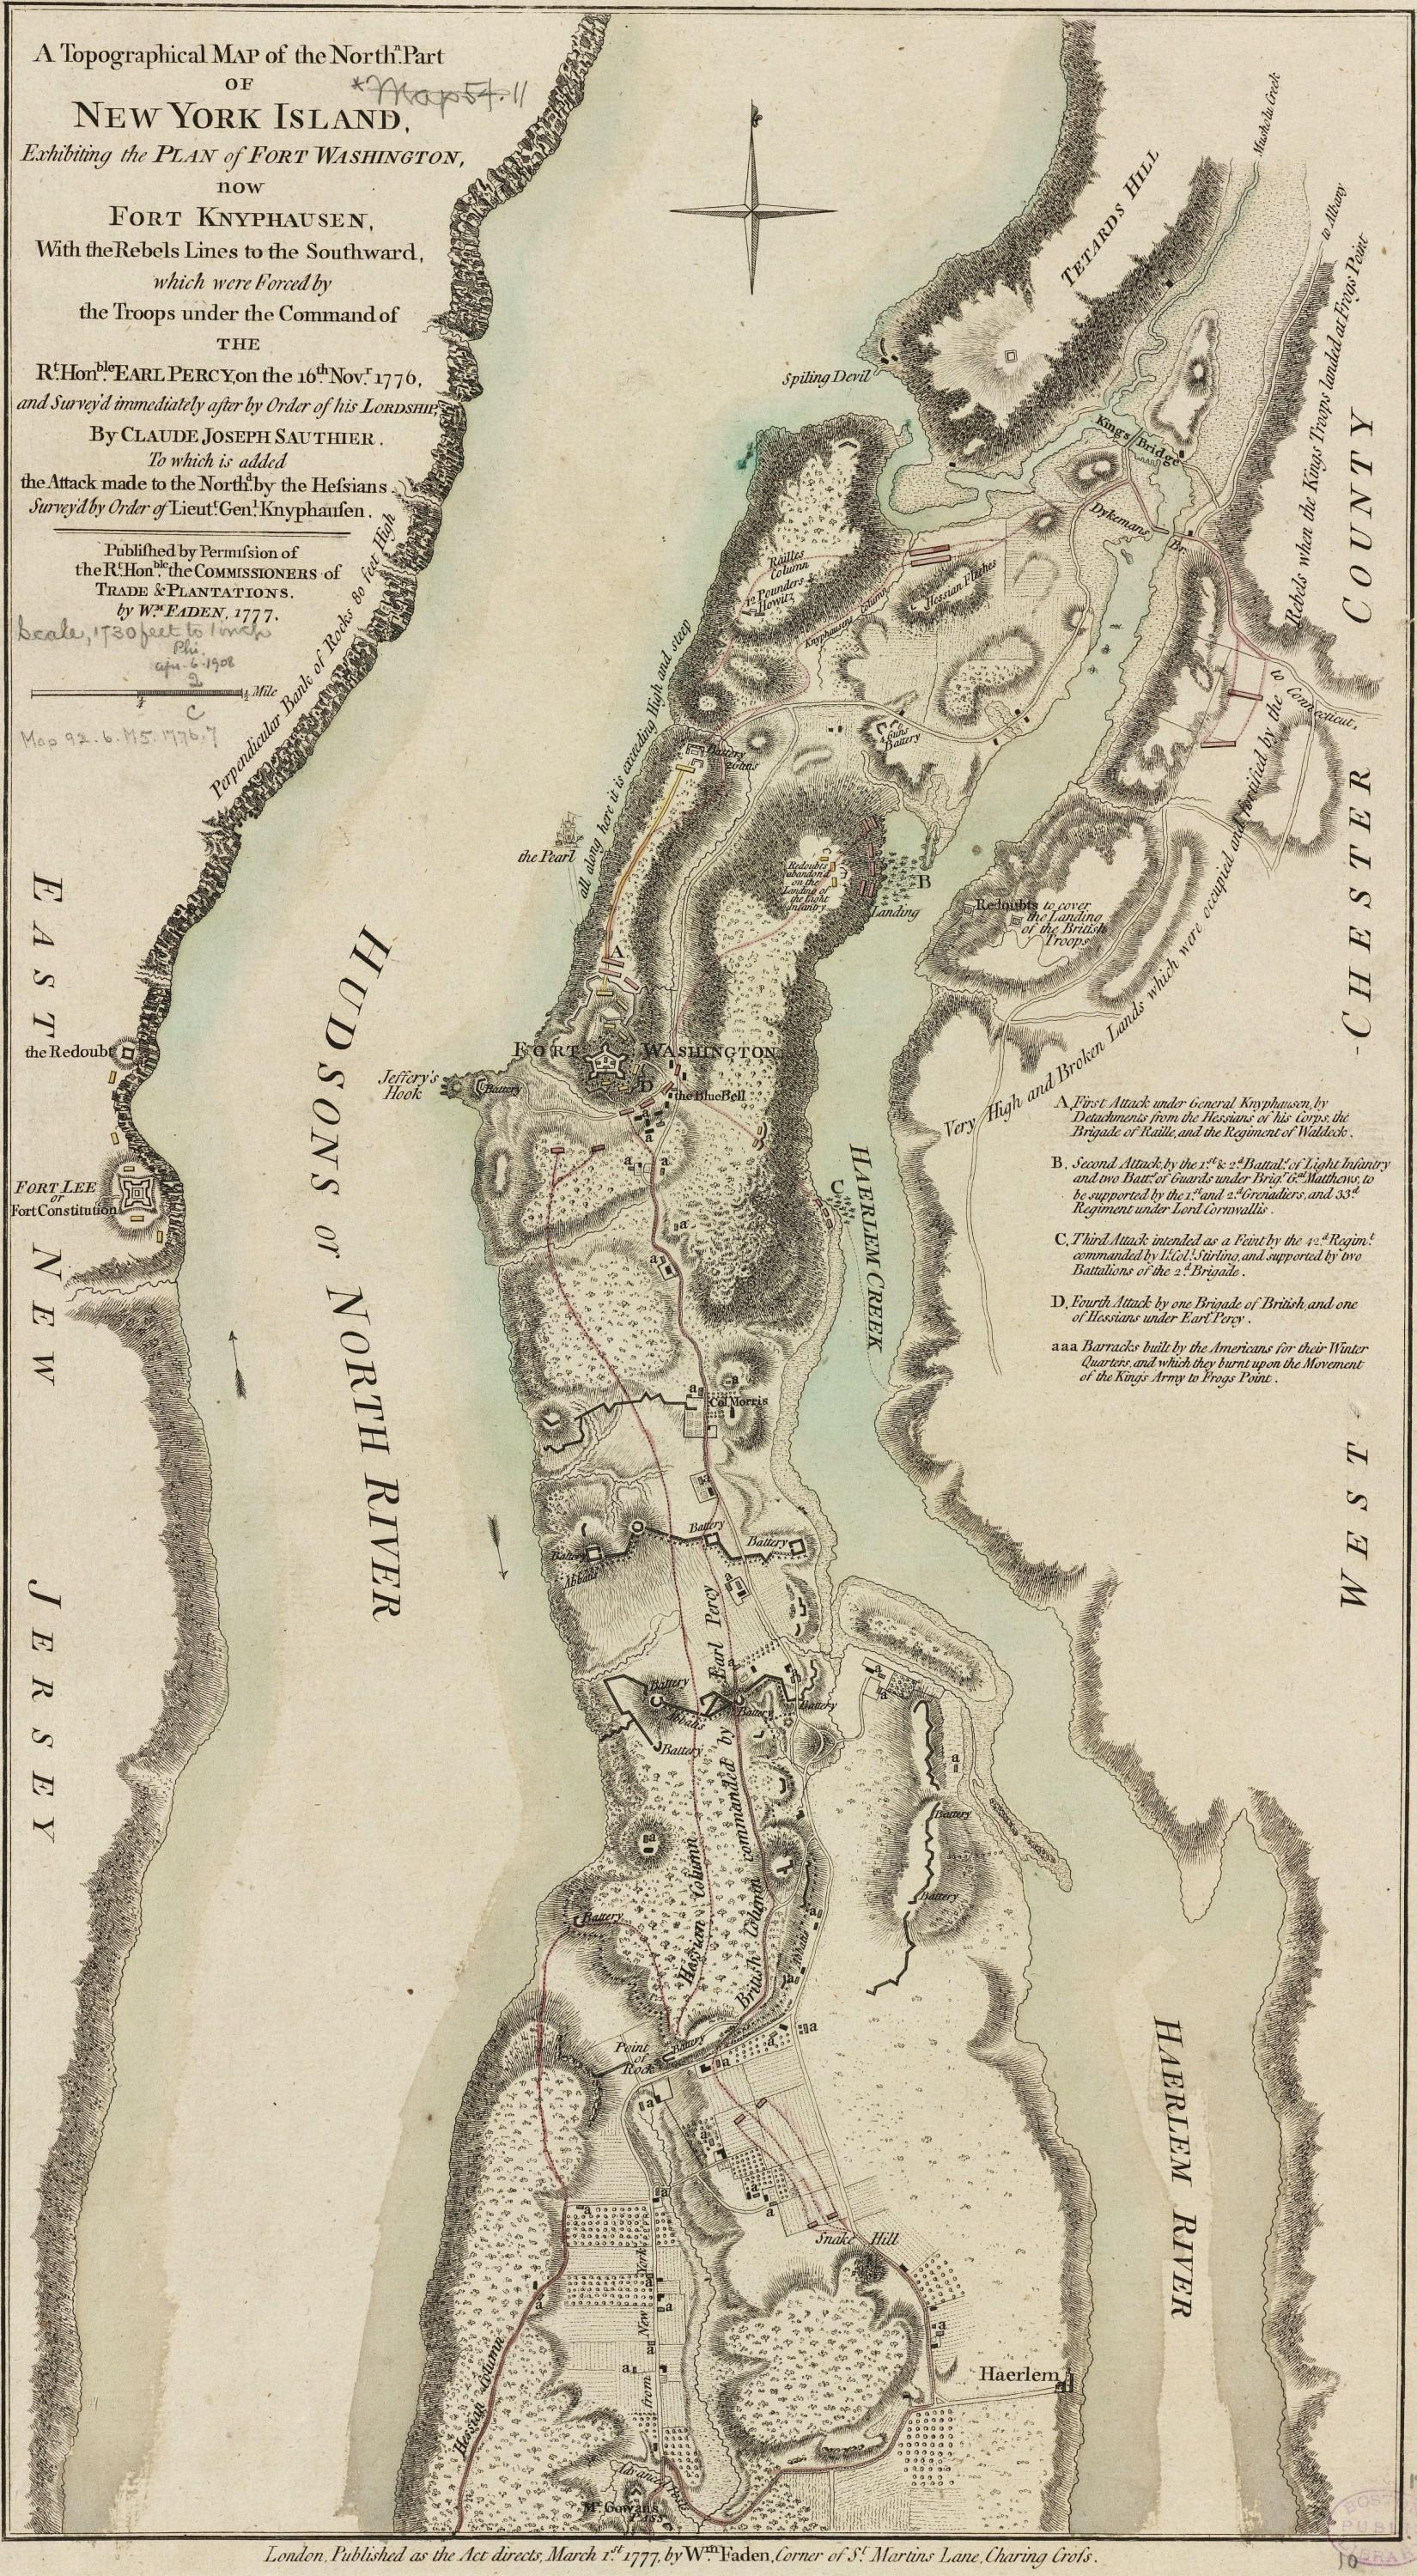 A plan of the attack of Fort Washington, now Fort Knyphausen, and of the American lines on New-York Island by the King's troops, on the 16th of November 1776, ca. 1776. [G3804.N4:2W3S3 1776 .S2]. Courtesy Library of Congress, Washington, D.C.